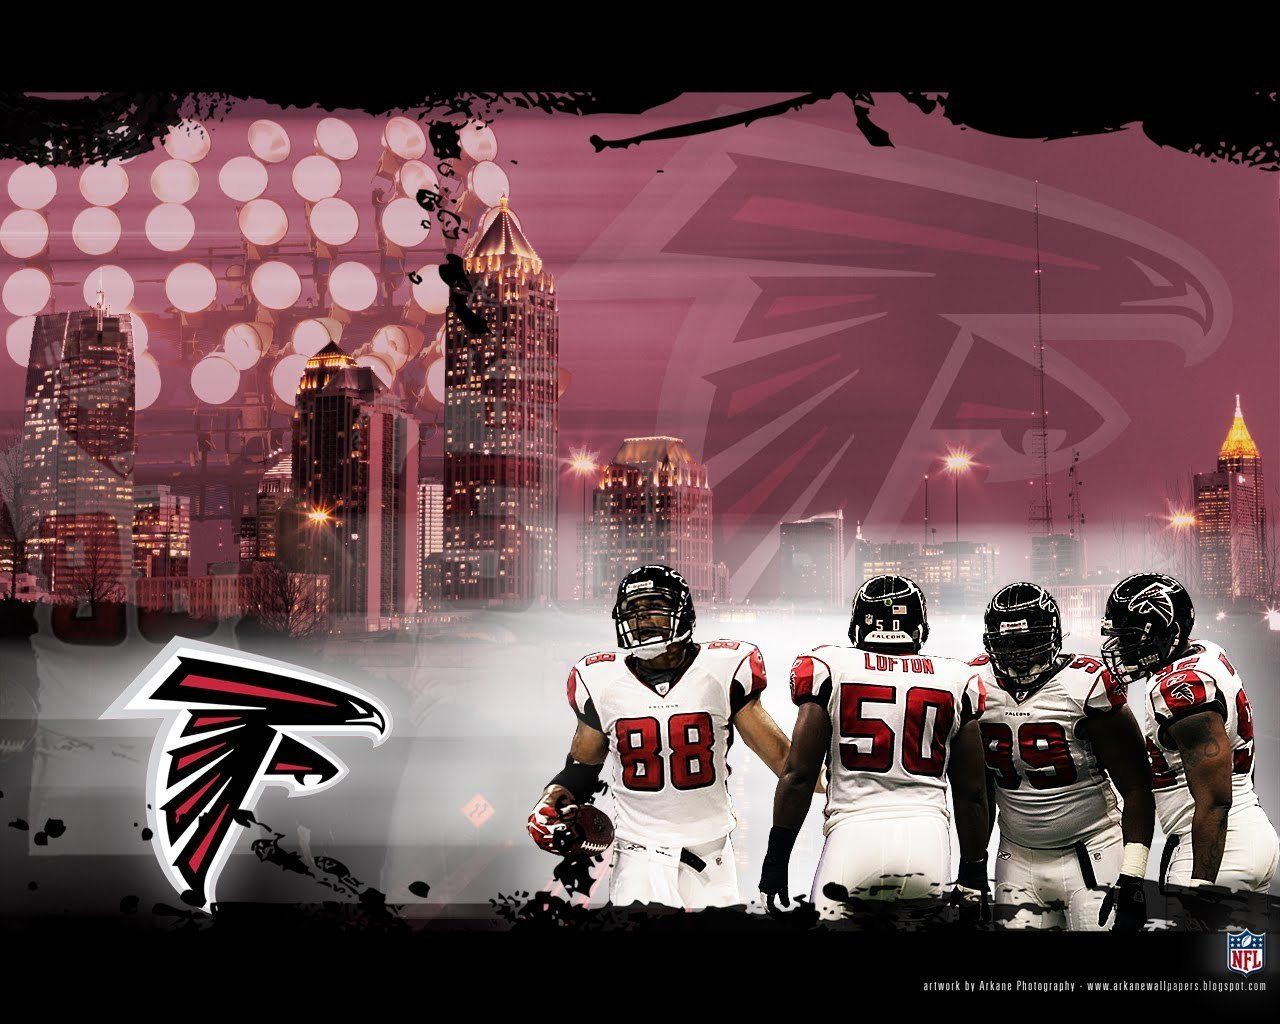 Atlanta Falcons Bing Images Atlanta Falcons Wallpaper Atlanta Falcons Christmas Atlanta Falcons Football